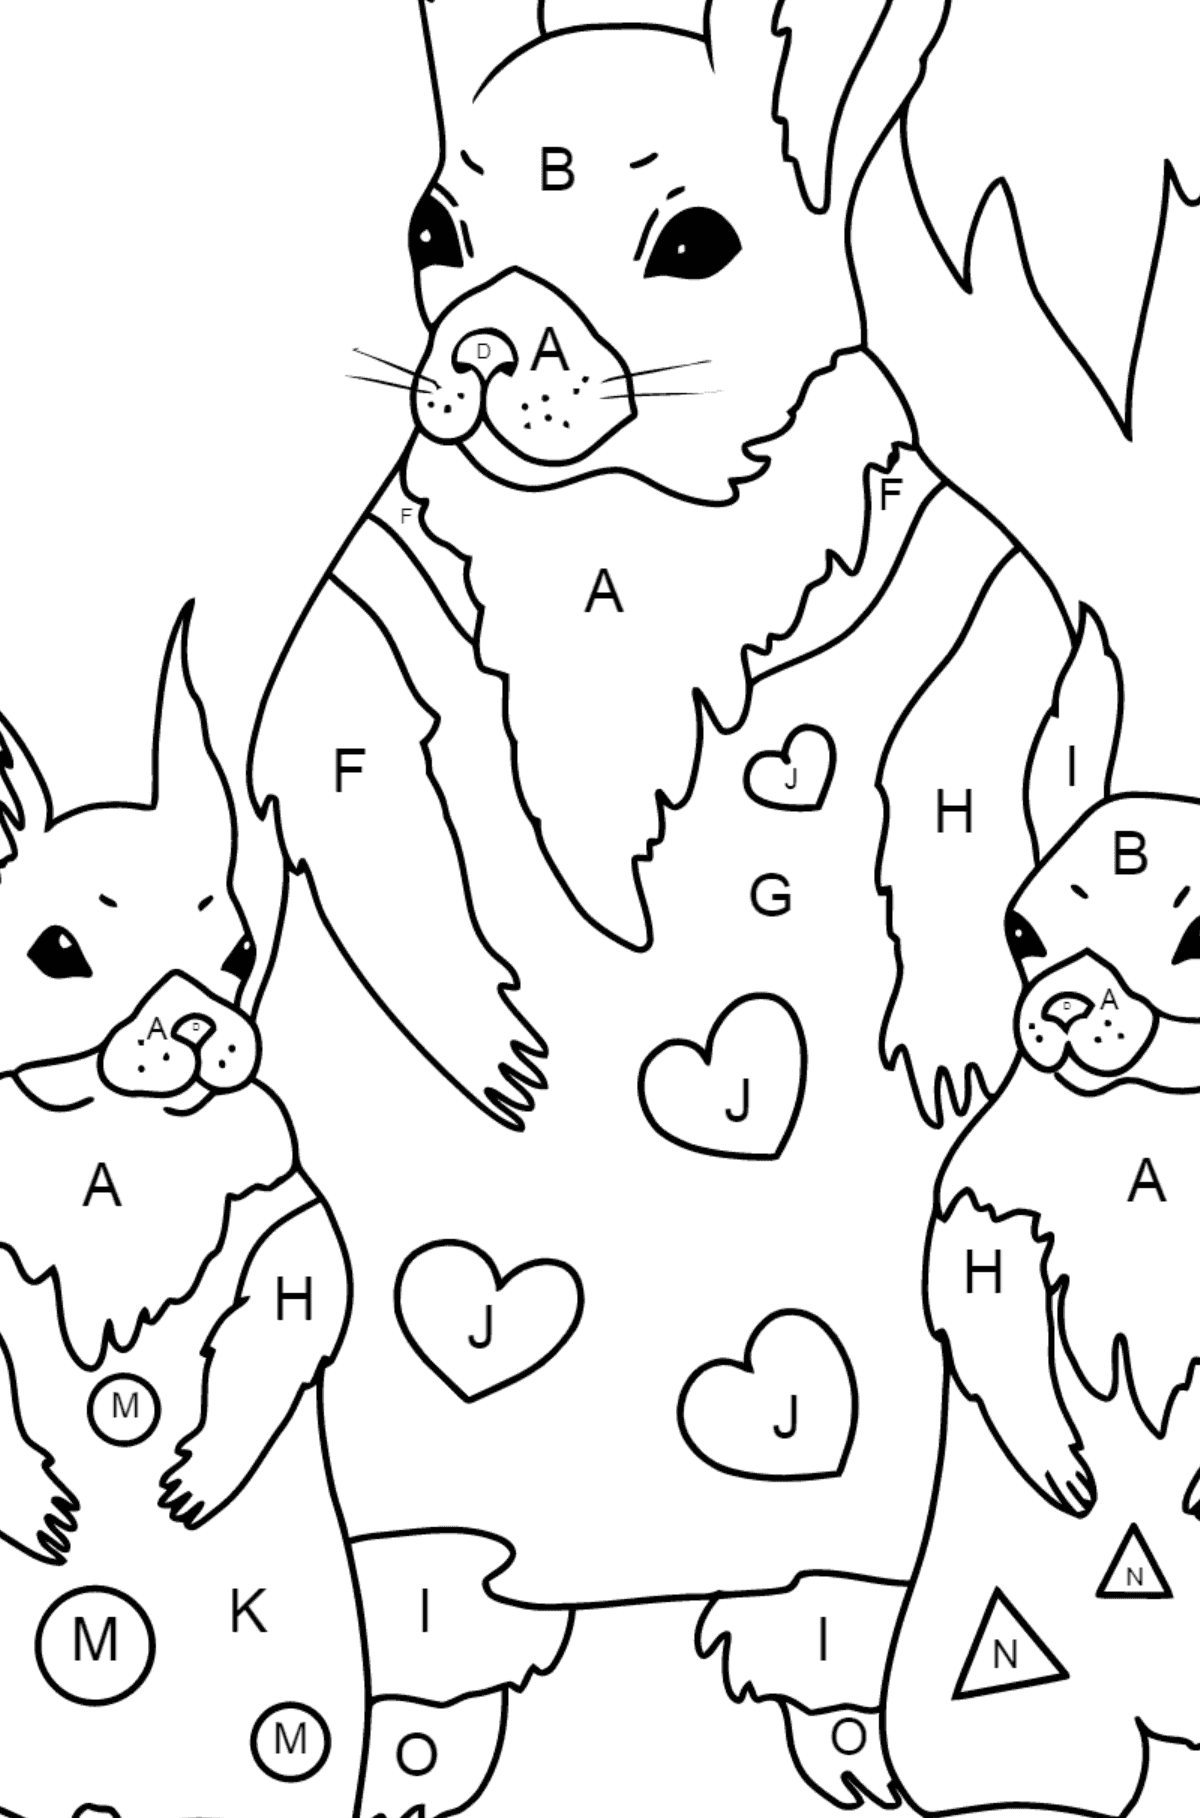 Spring Coloring Page - Squirrels have Dressed Up - Coloring by Letters for Kids